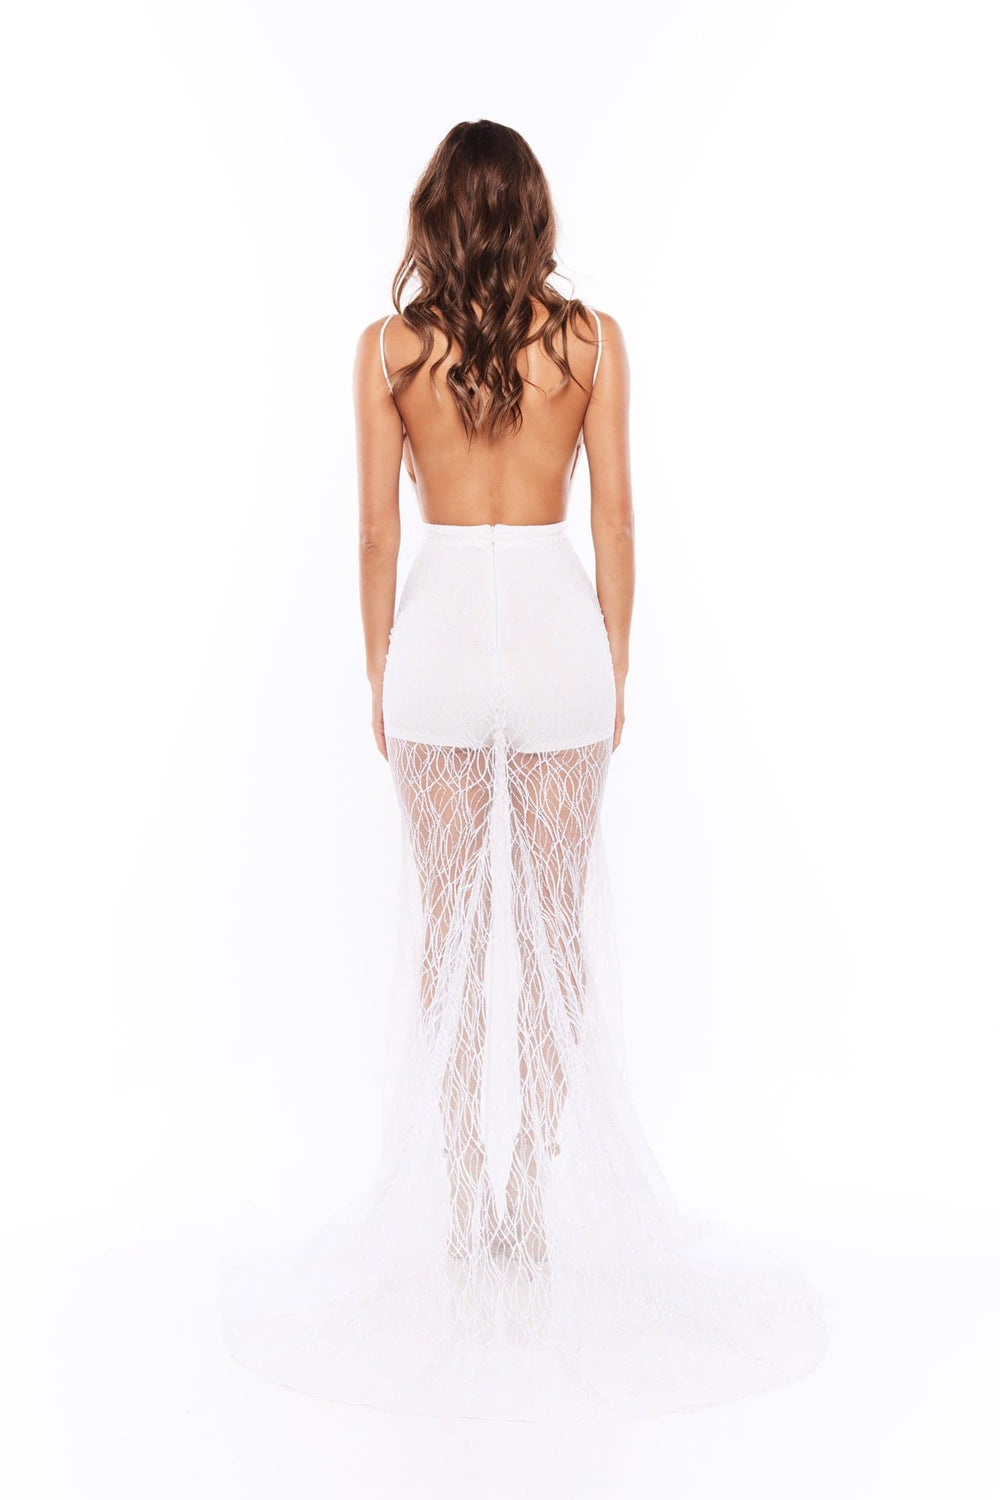 Joella - White Glitter Gown with Low Back & Plunge Neckline